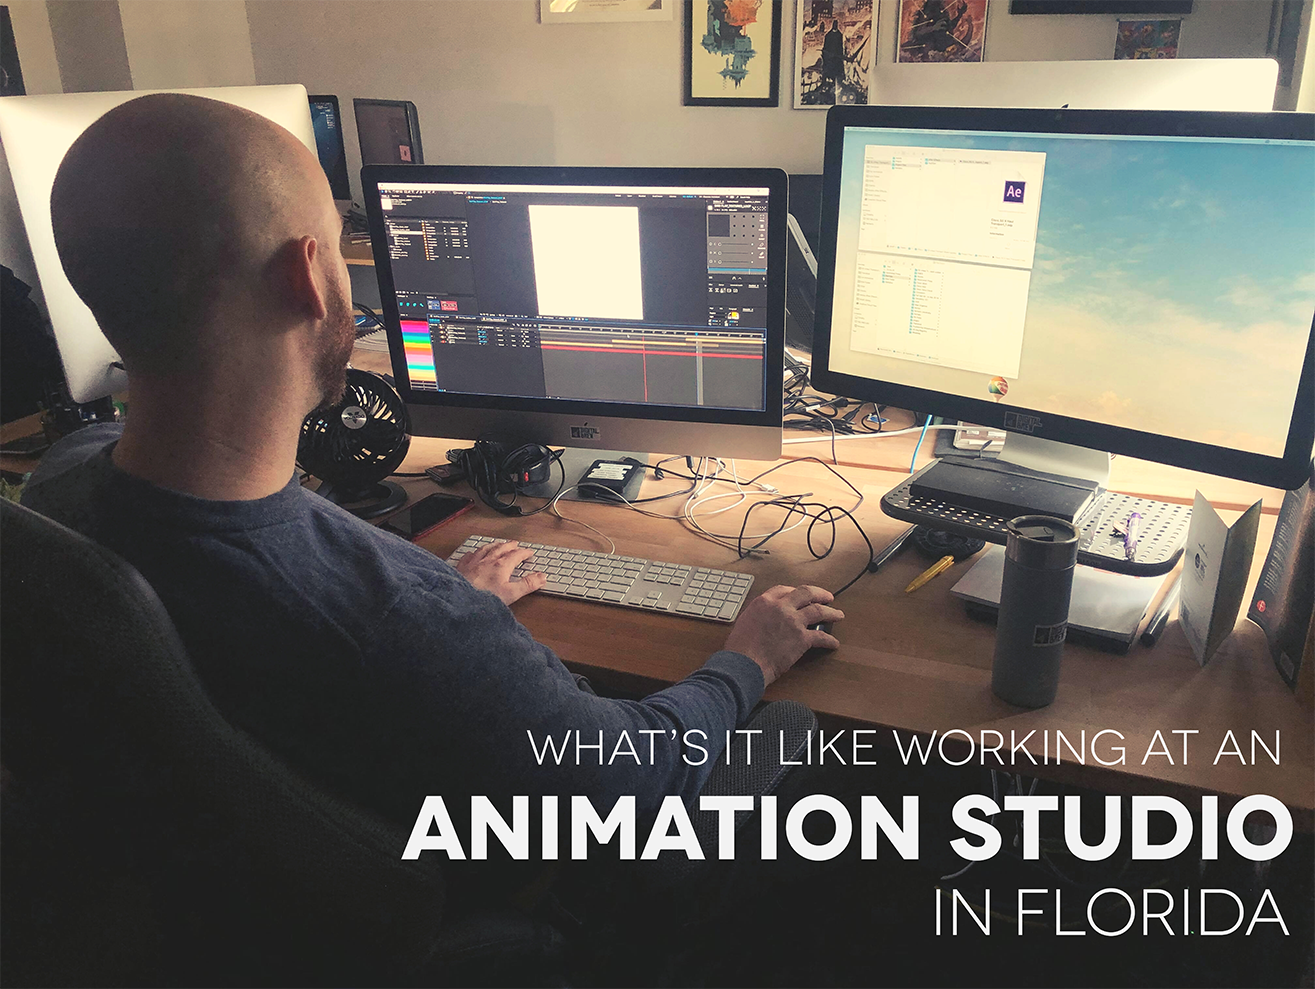 Kyle works on huis animation